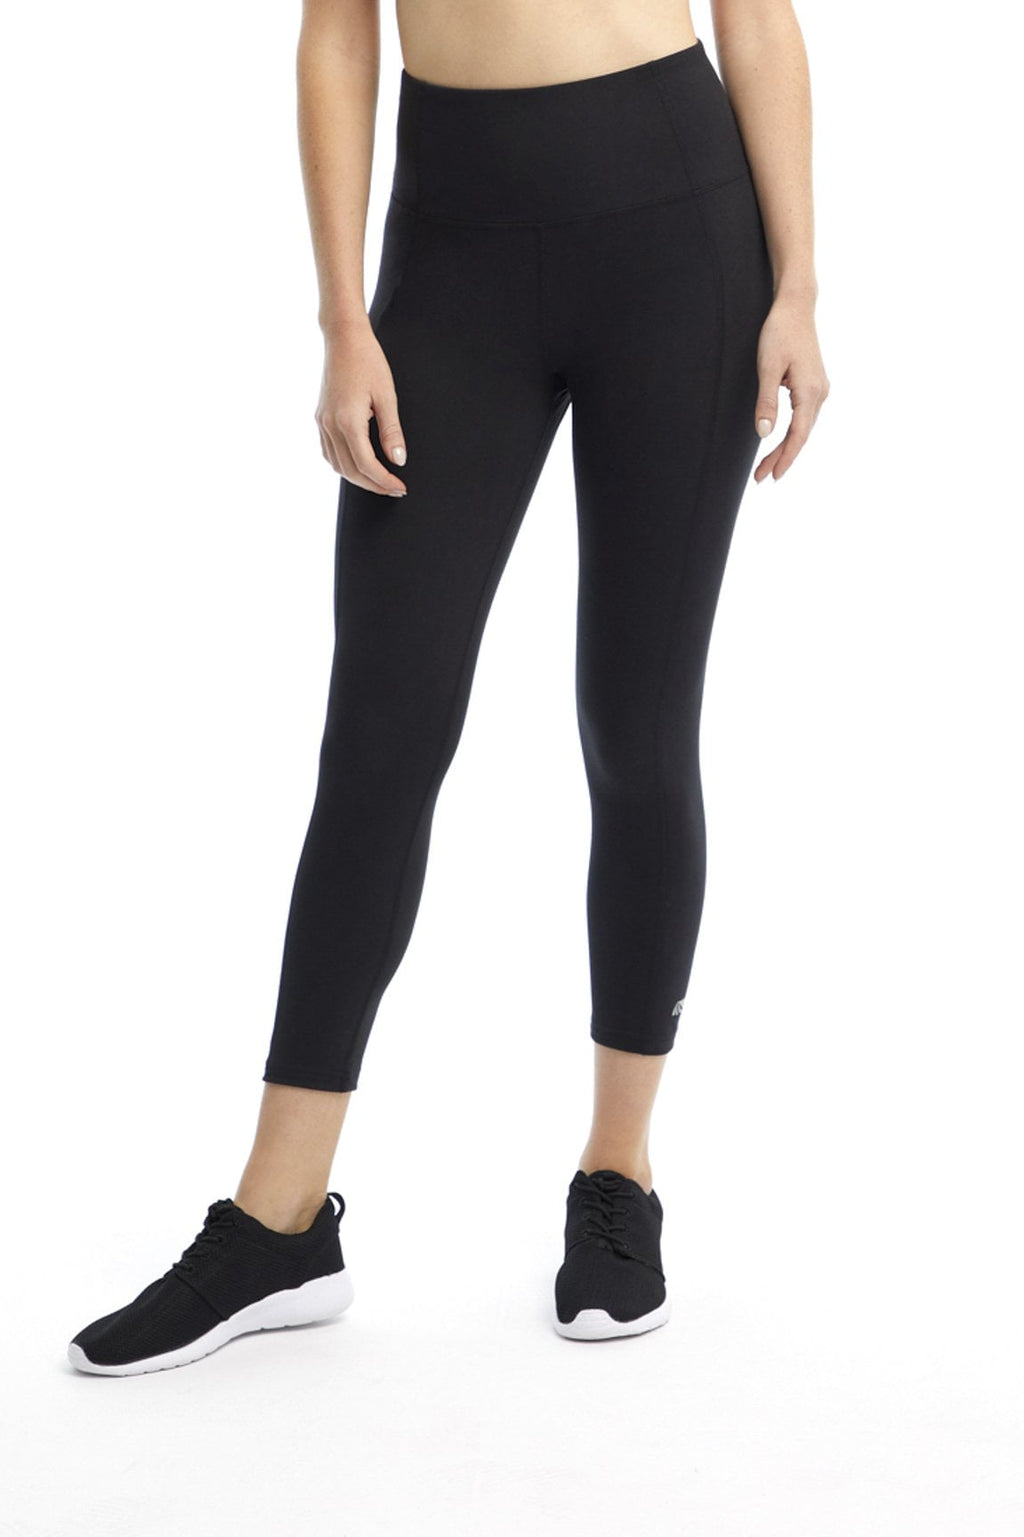 The Weekend® High Rise Tummy Control Capri